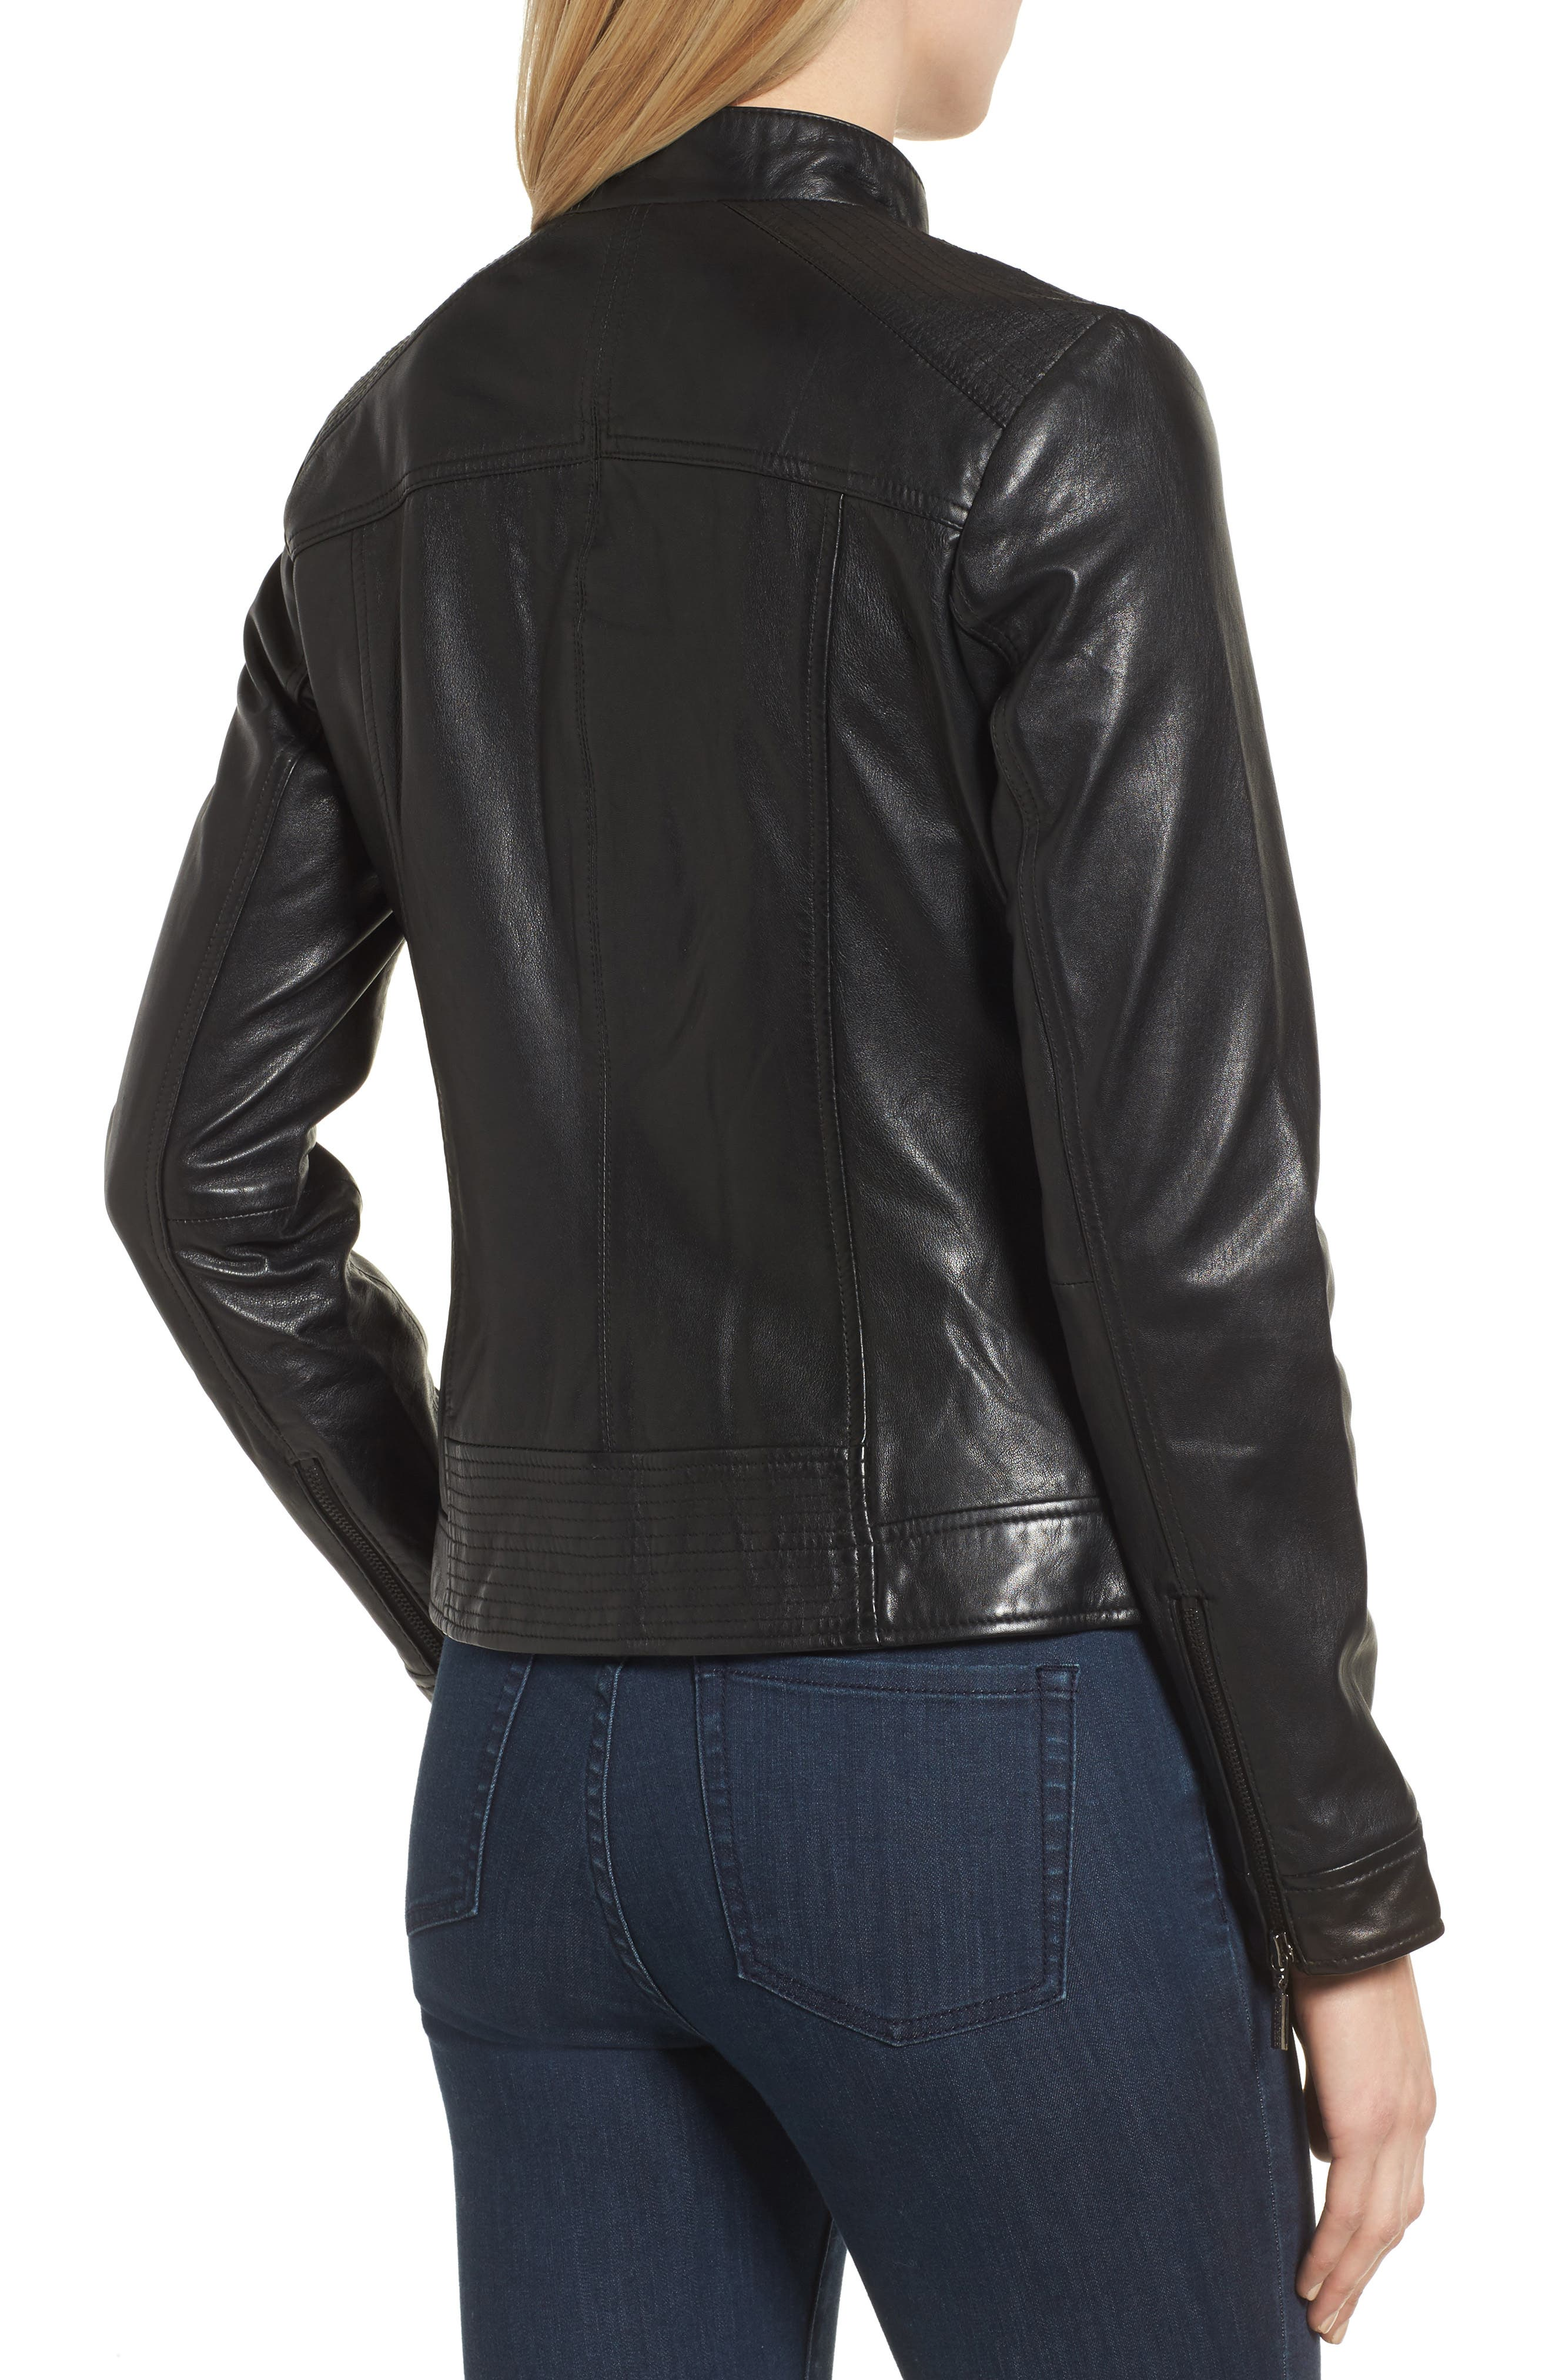 Kerwin Pocket Detail Leather Jacket,                             Alternate thumbnail 2, color,                             001